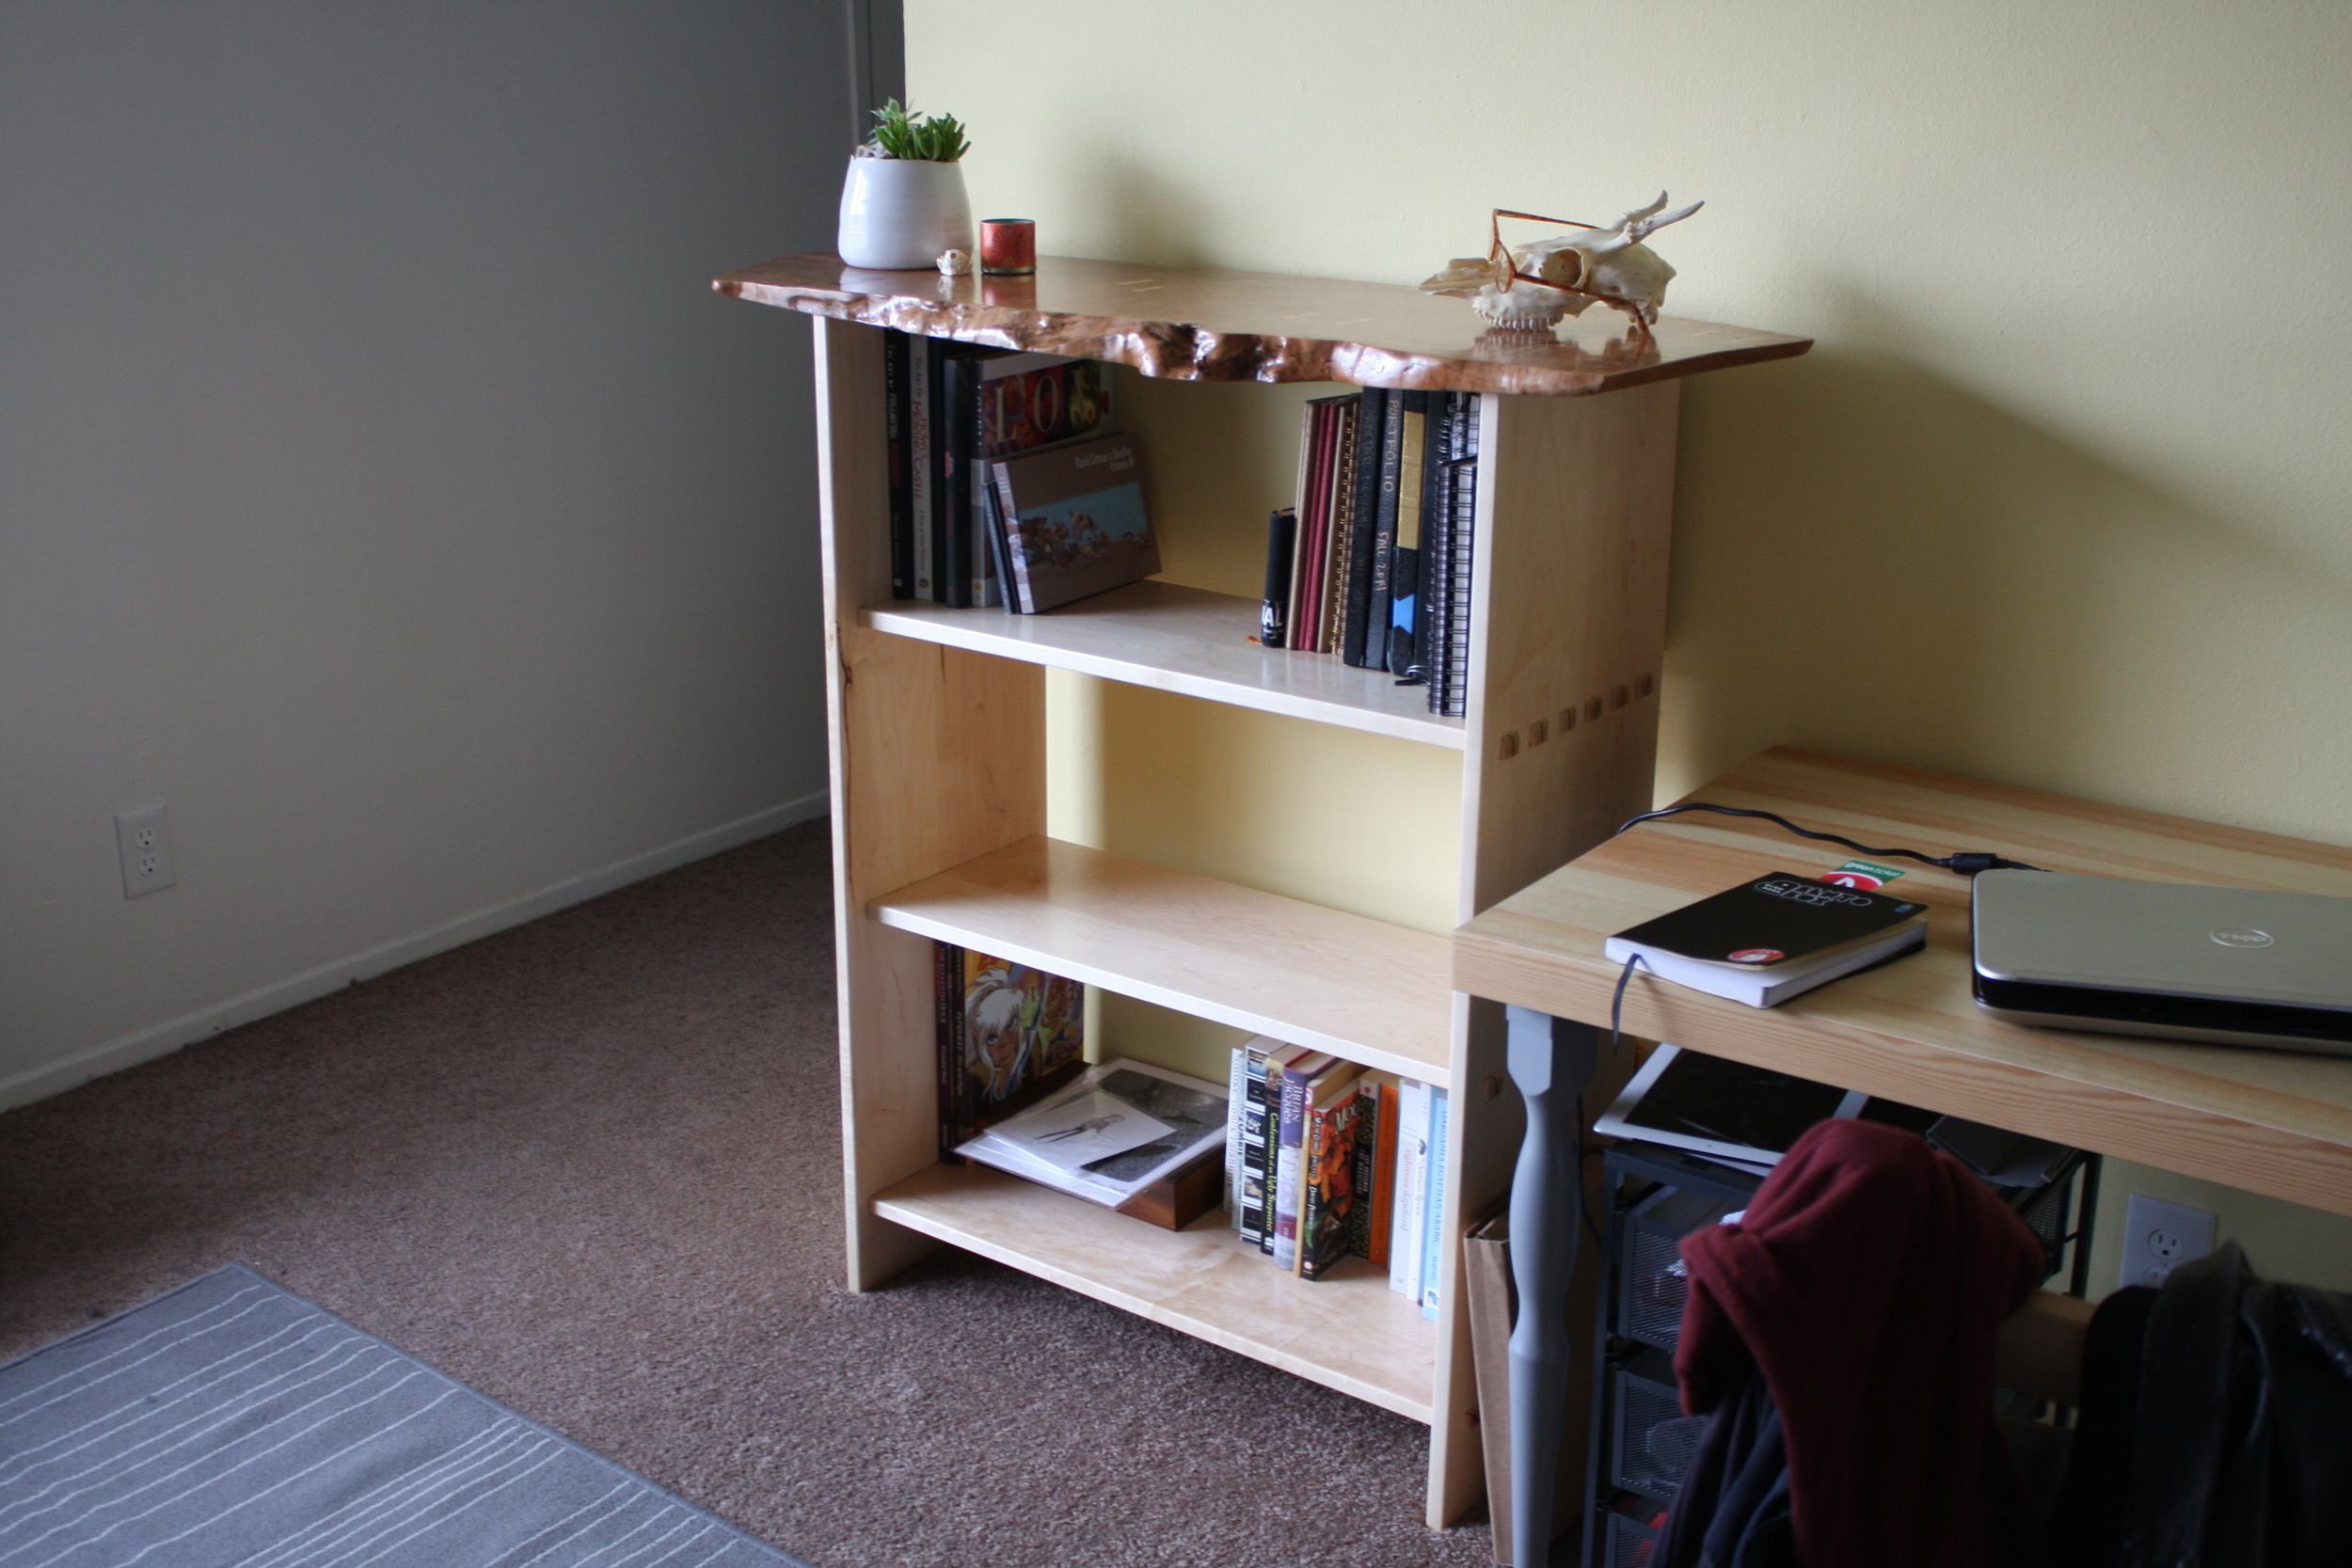 The bookshelf in its new home